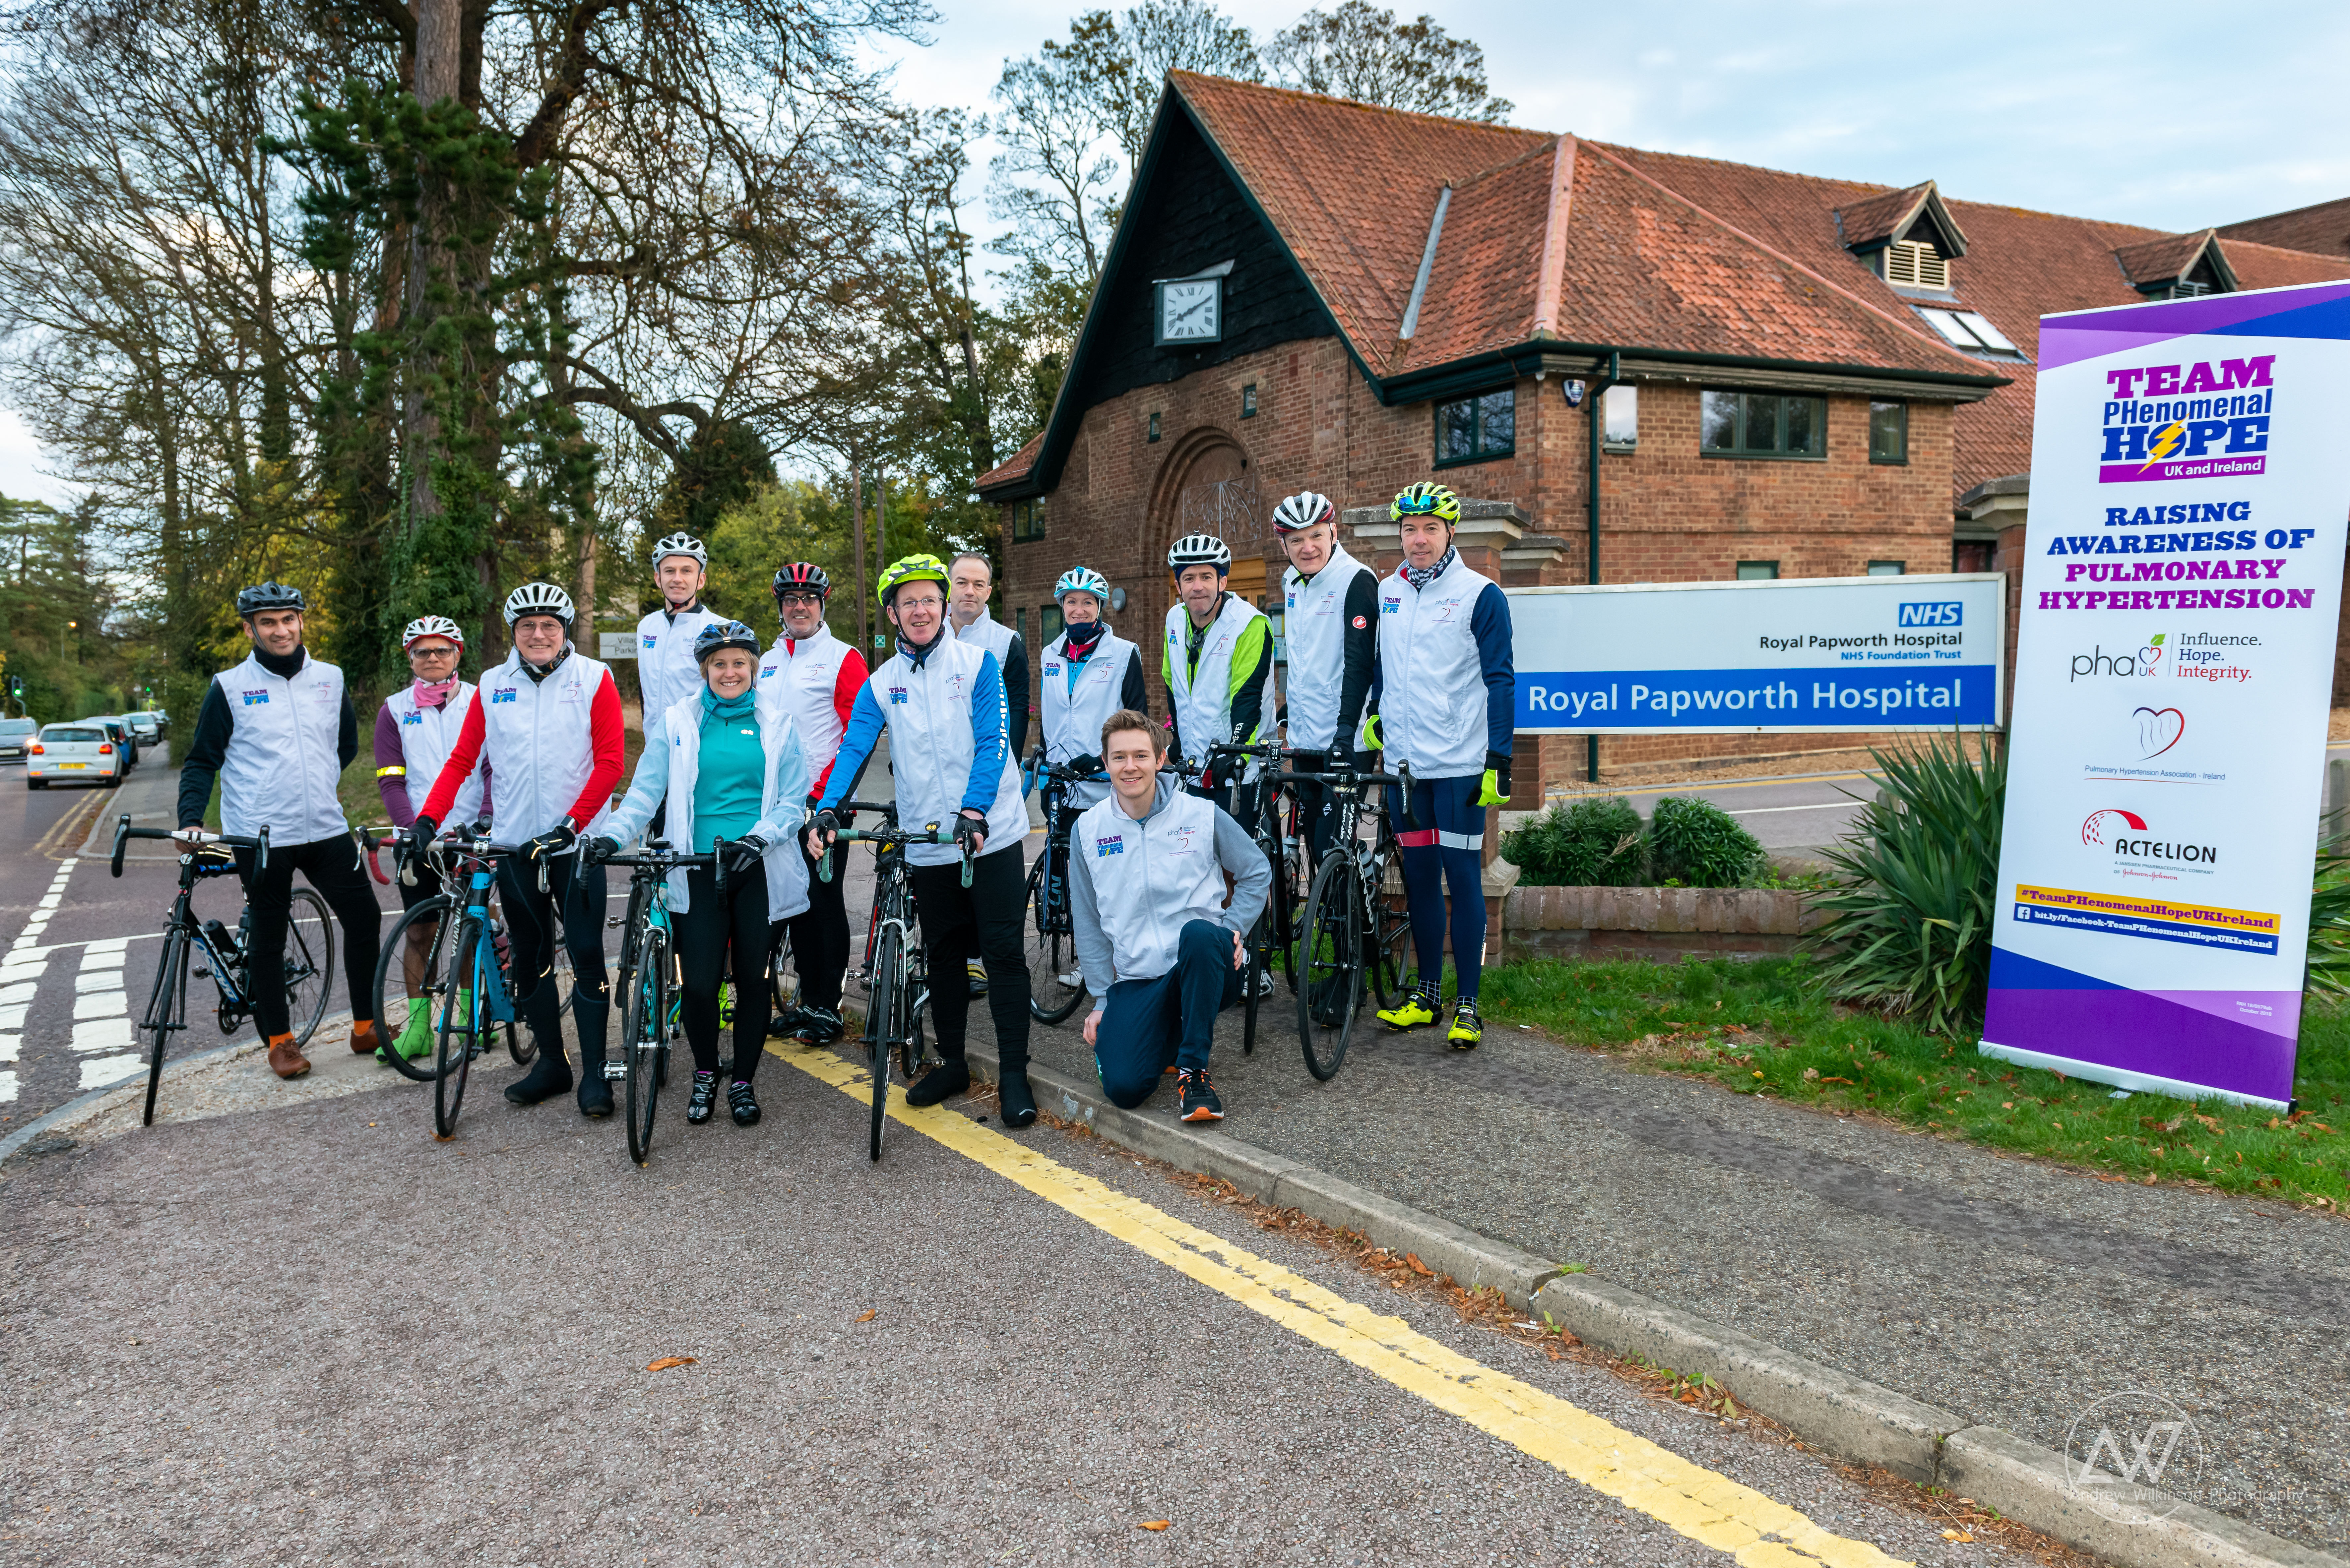 Staff in the saddle for Pulmonary Hypertension Awareness Week charity push